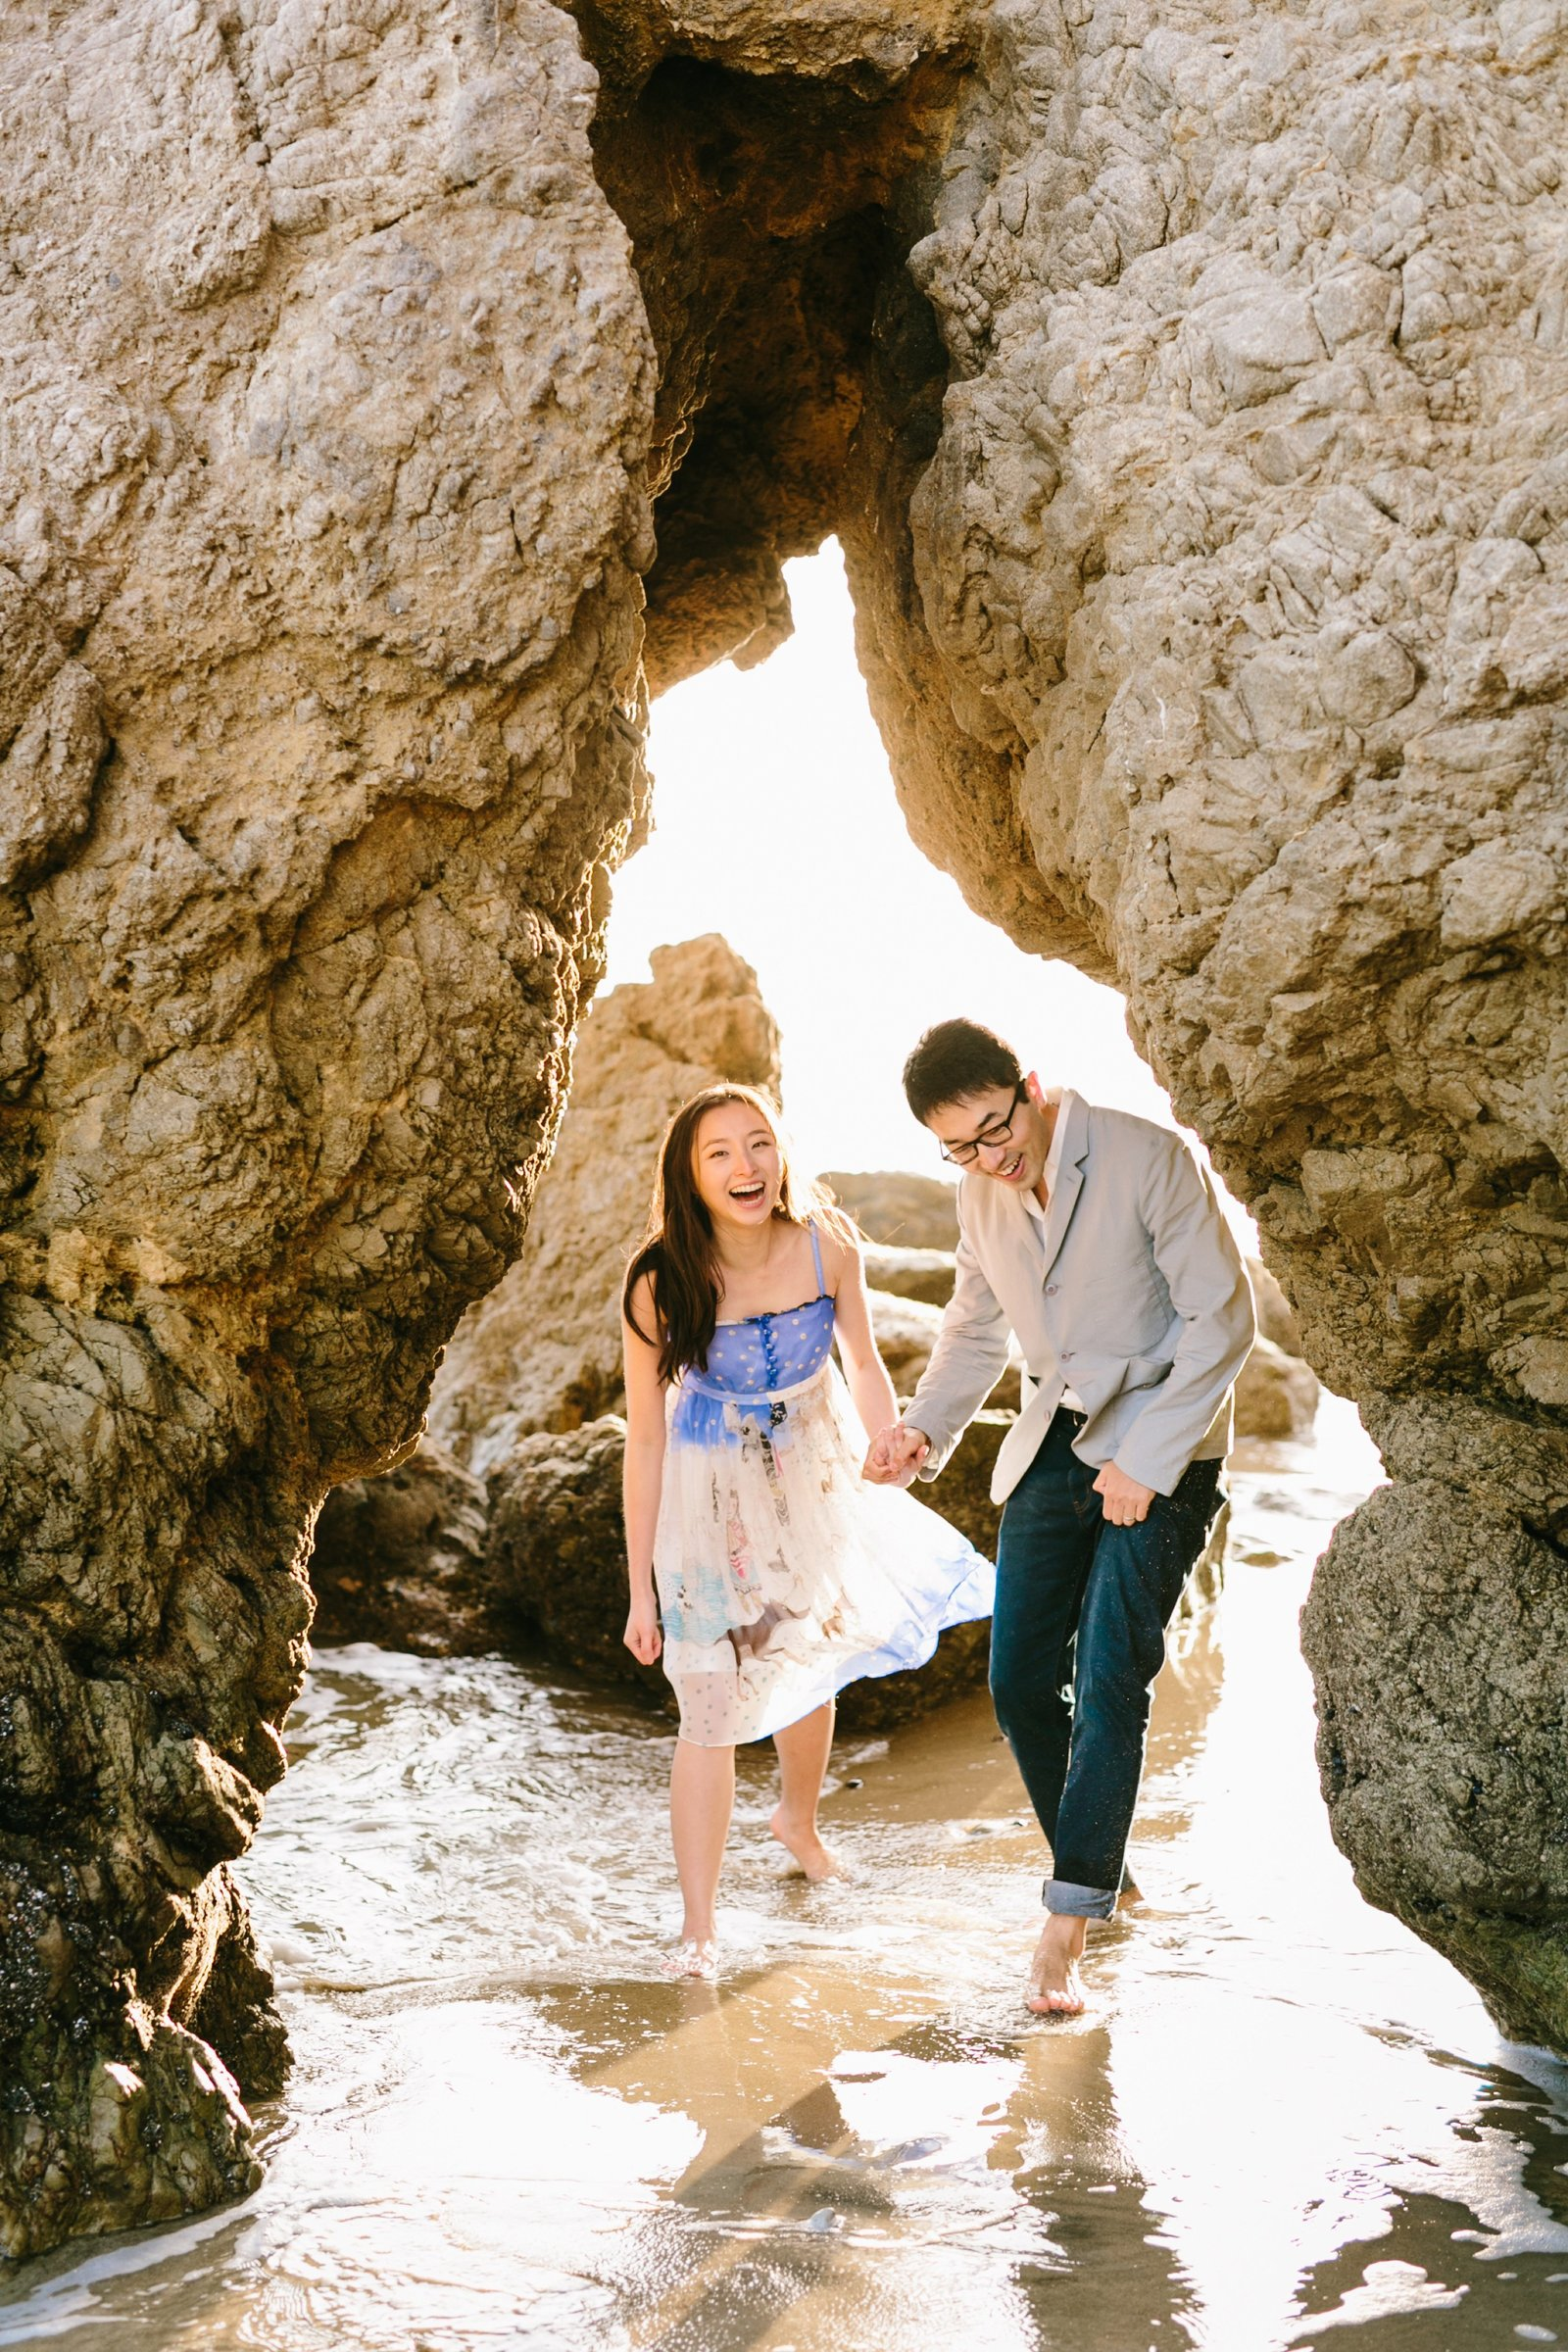 Engagement Photos-Jodee Debes Photography-131